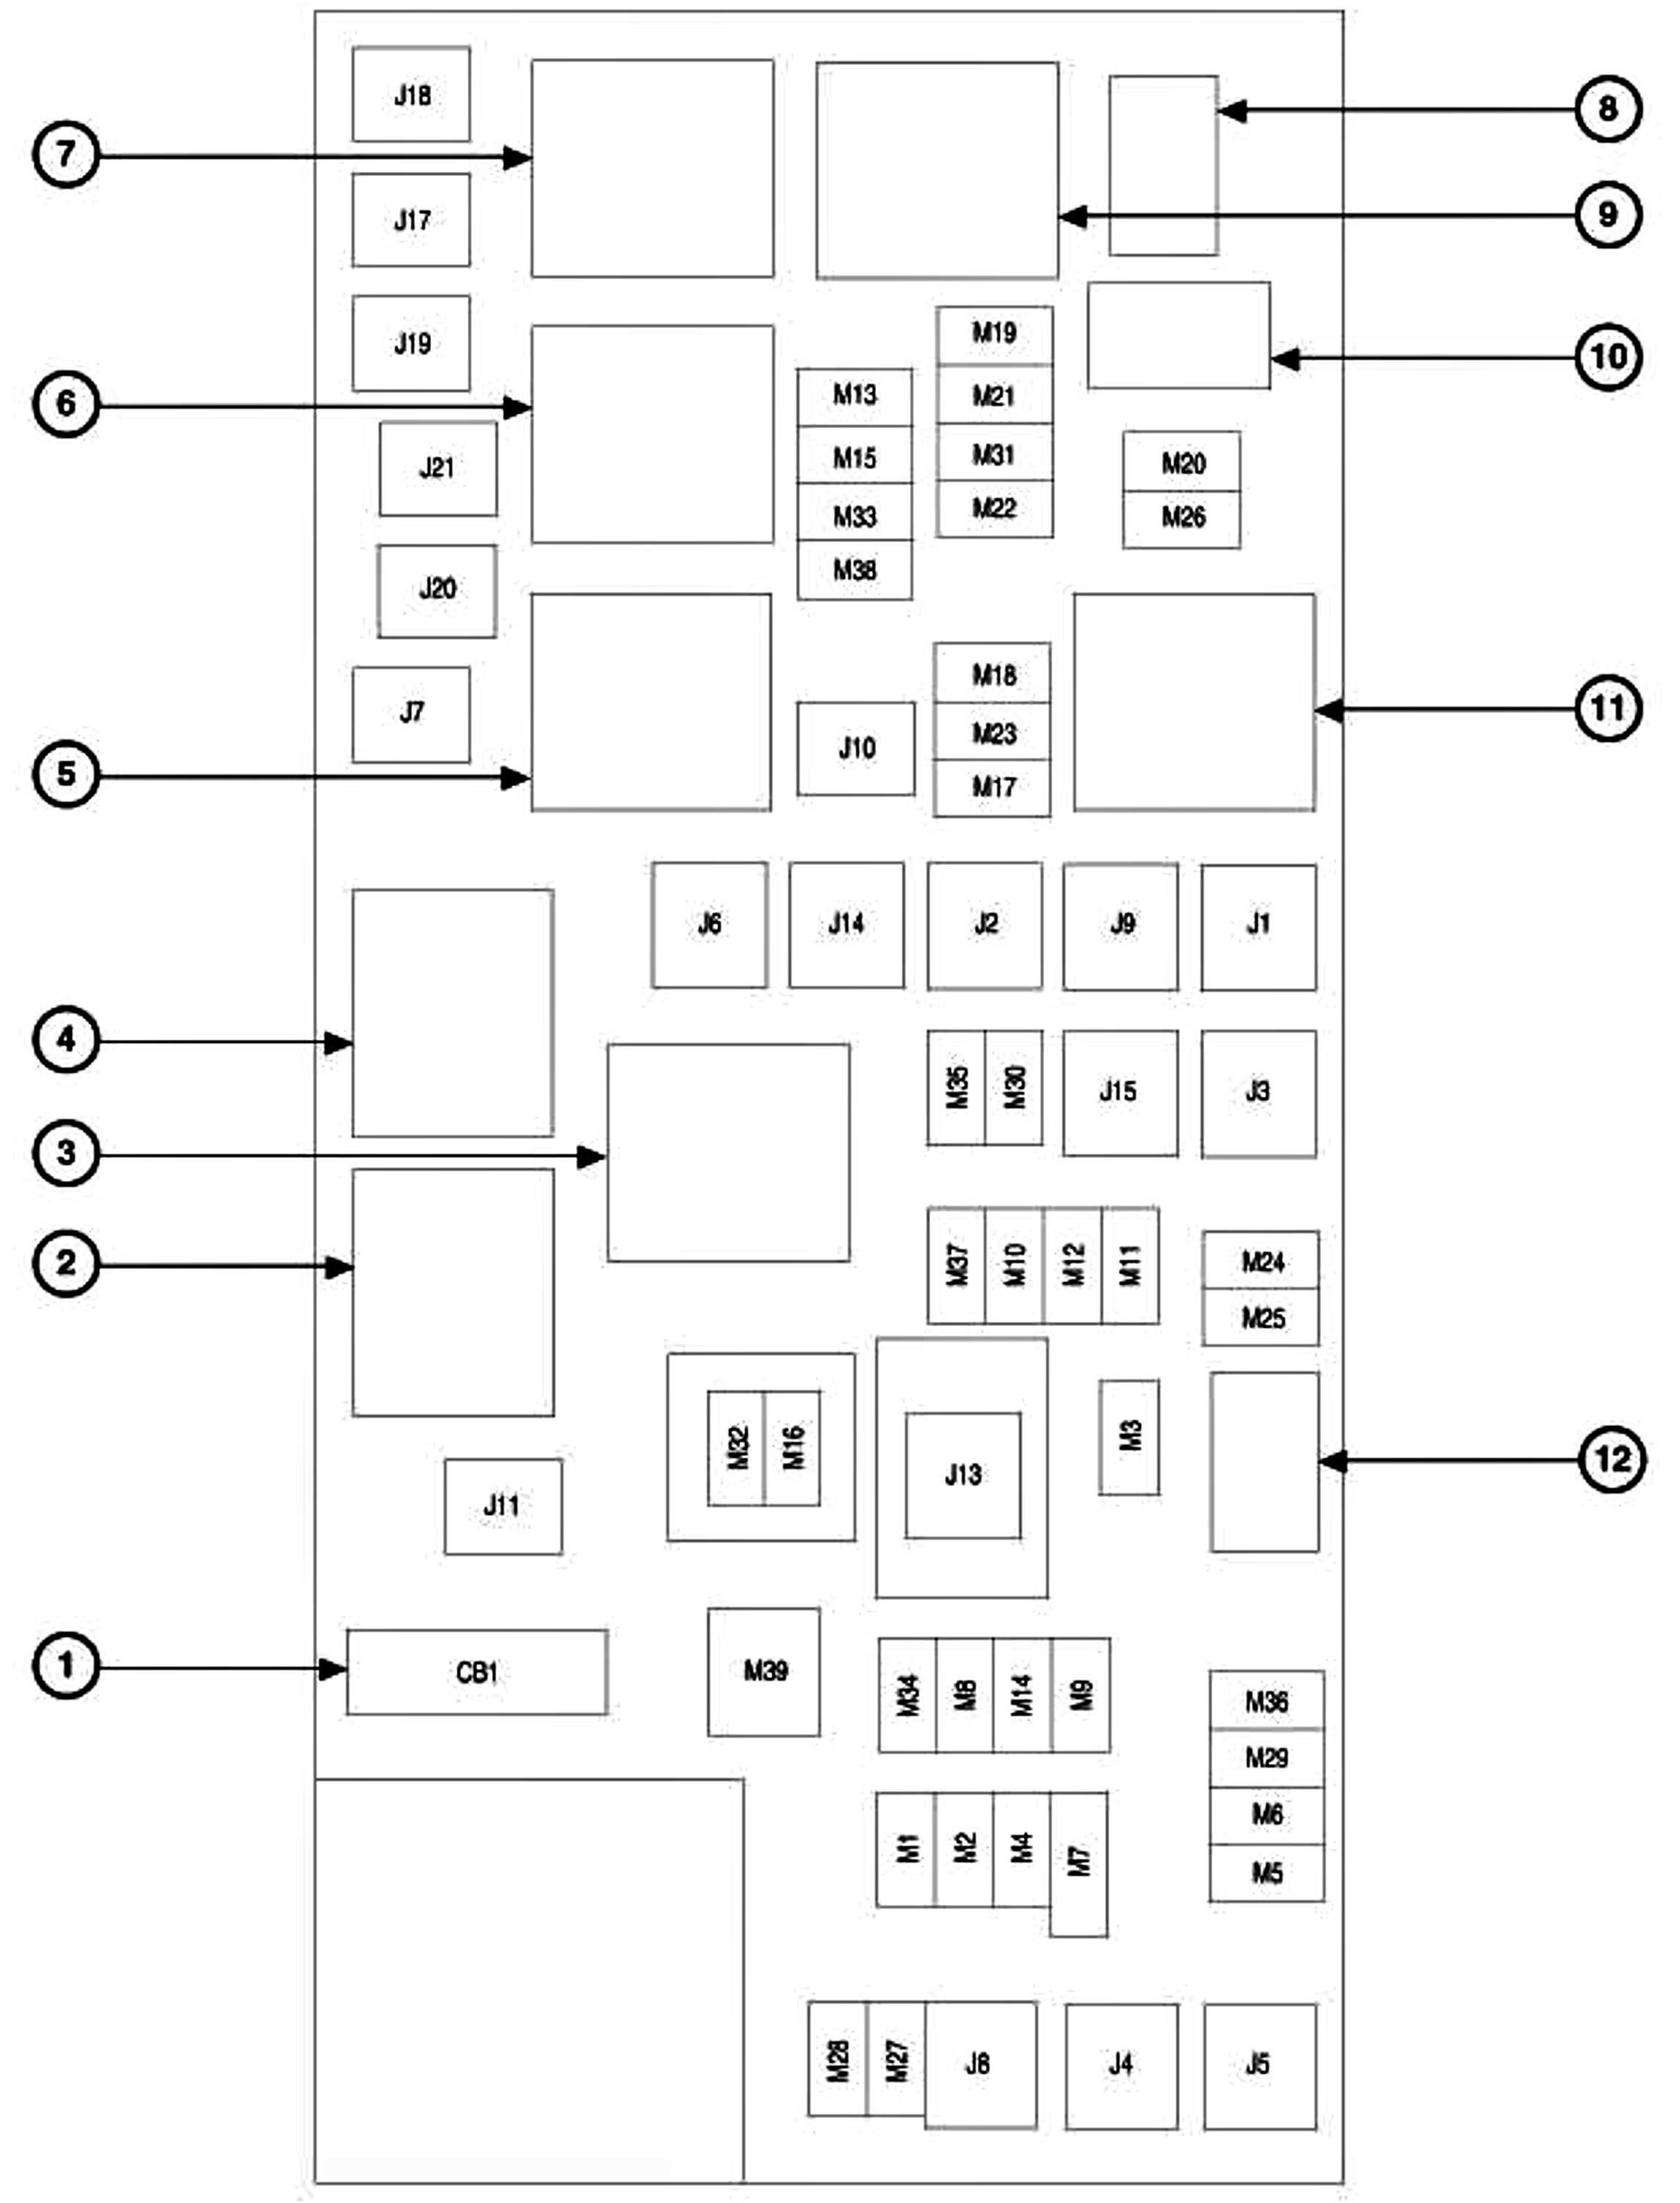 2006 Jeep Commander Fuse Box Diagram Jpeg - http://carimagescolay.casa/